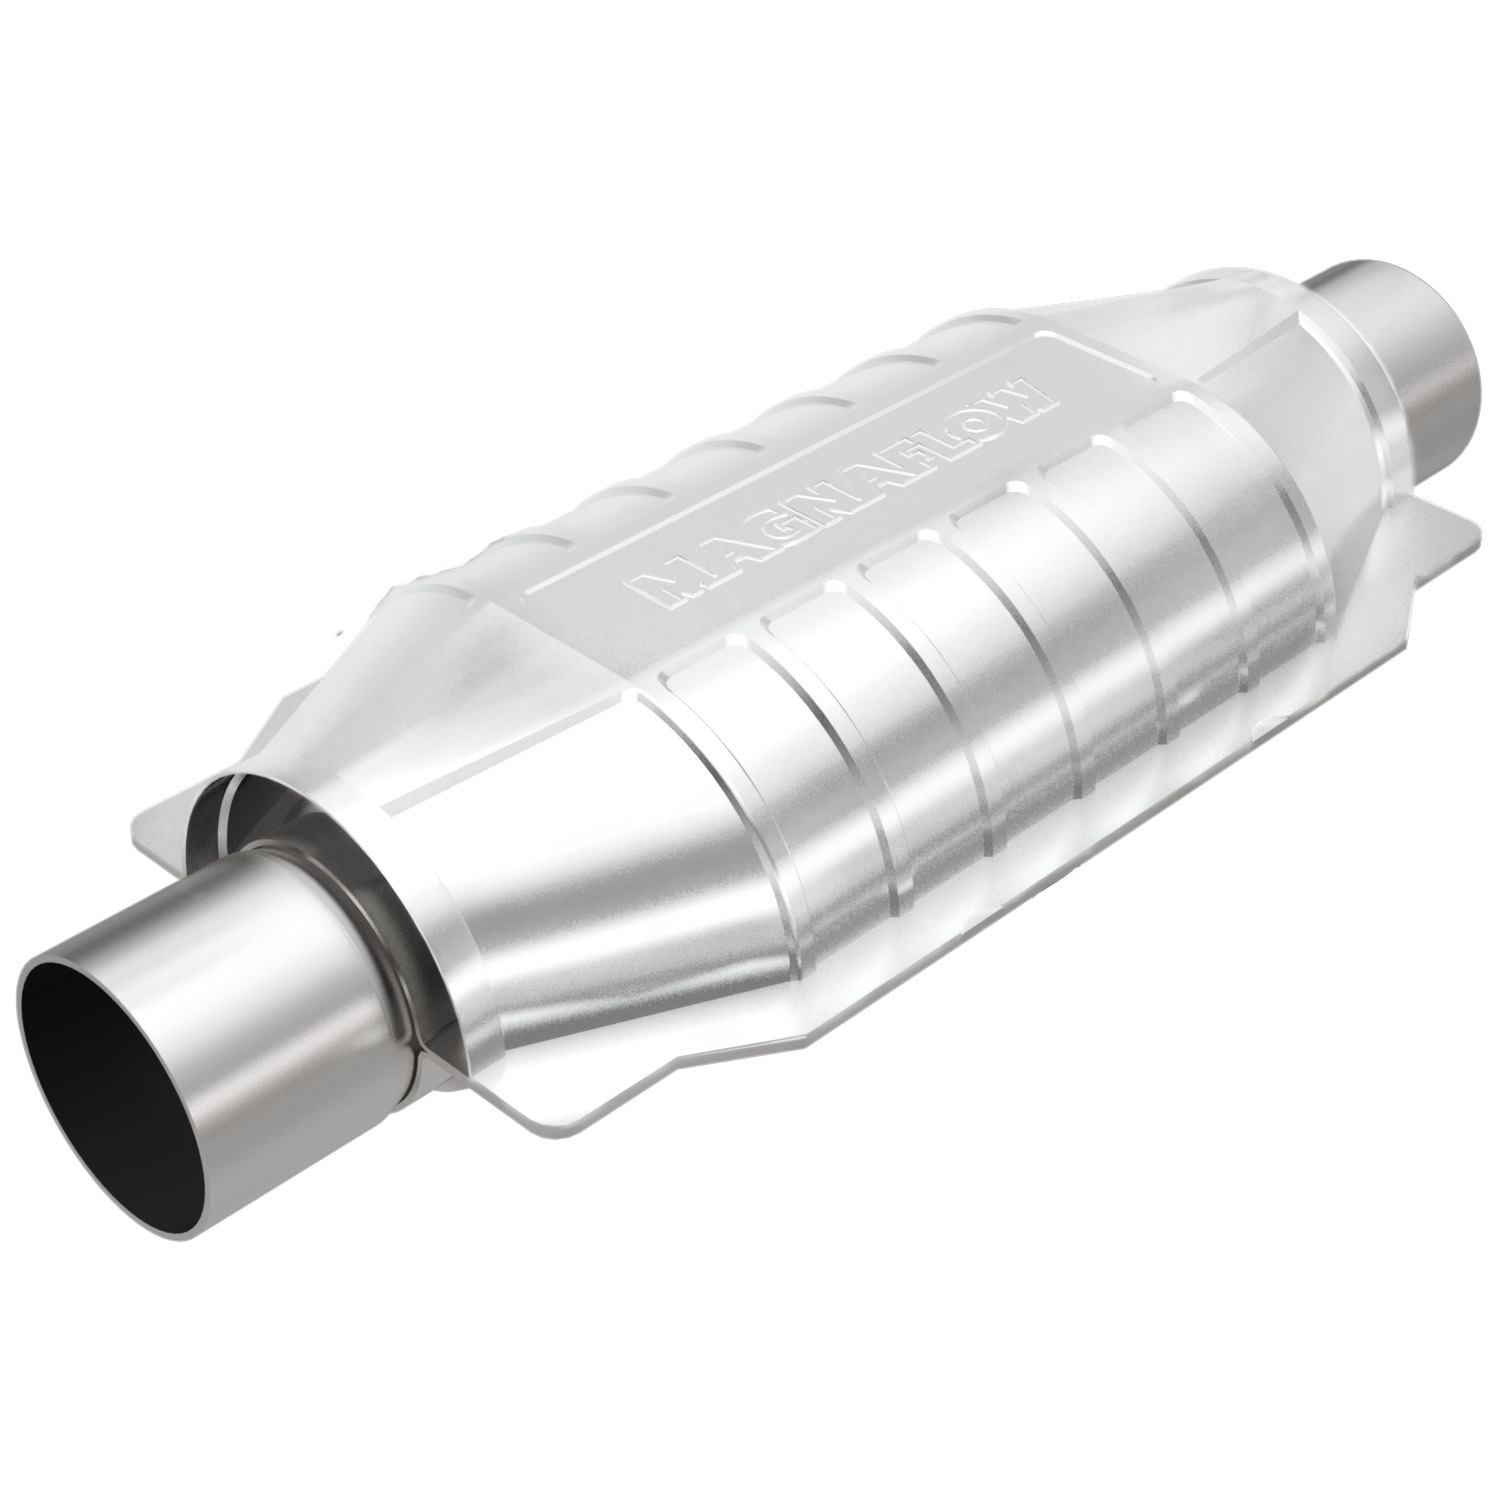 MagnaFlow Exhaust Products Catalytic Converter (33006)